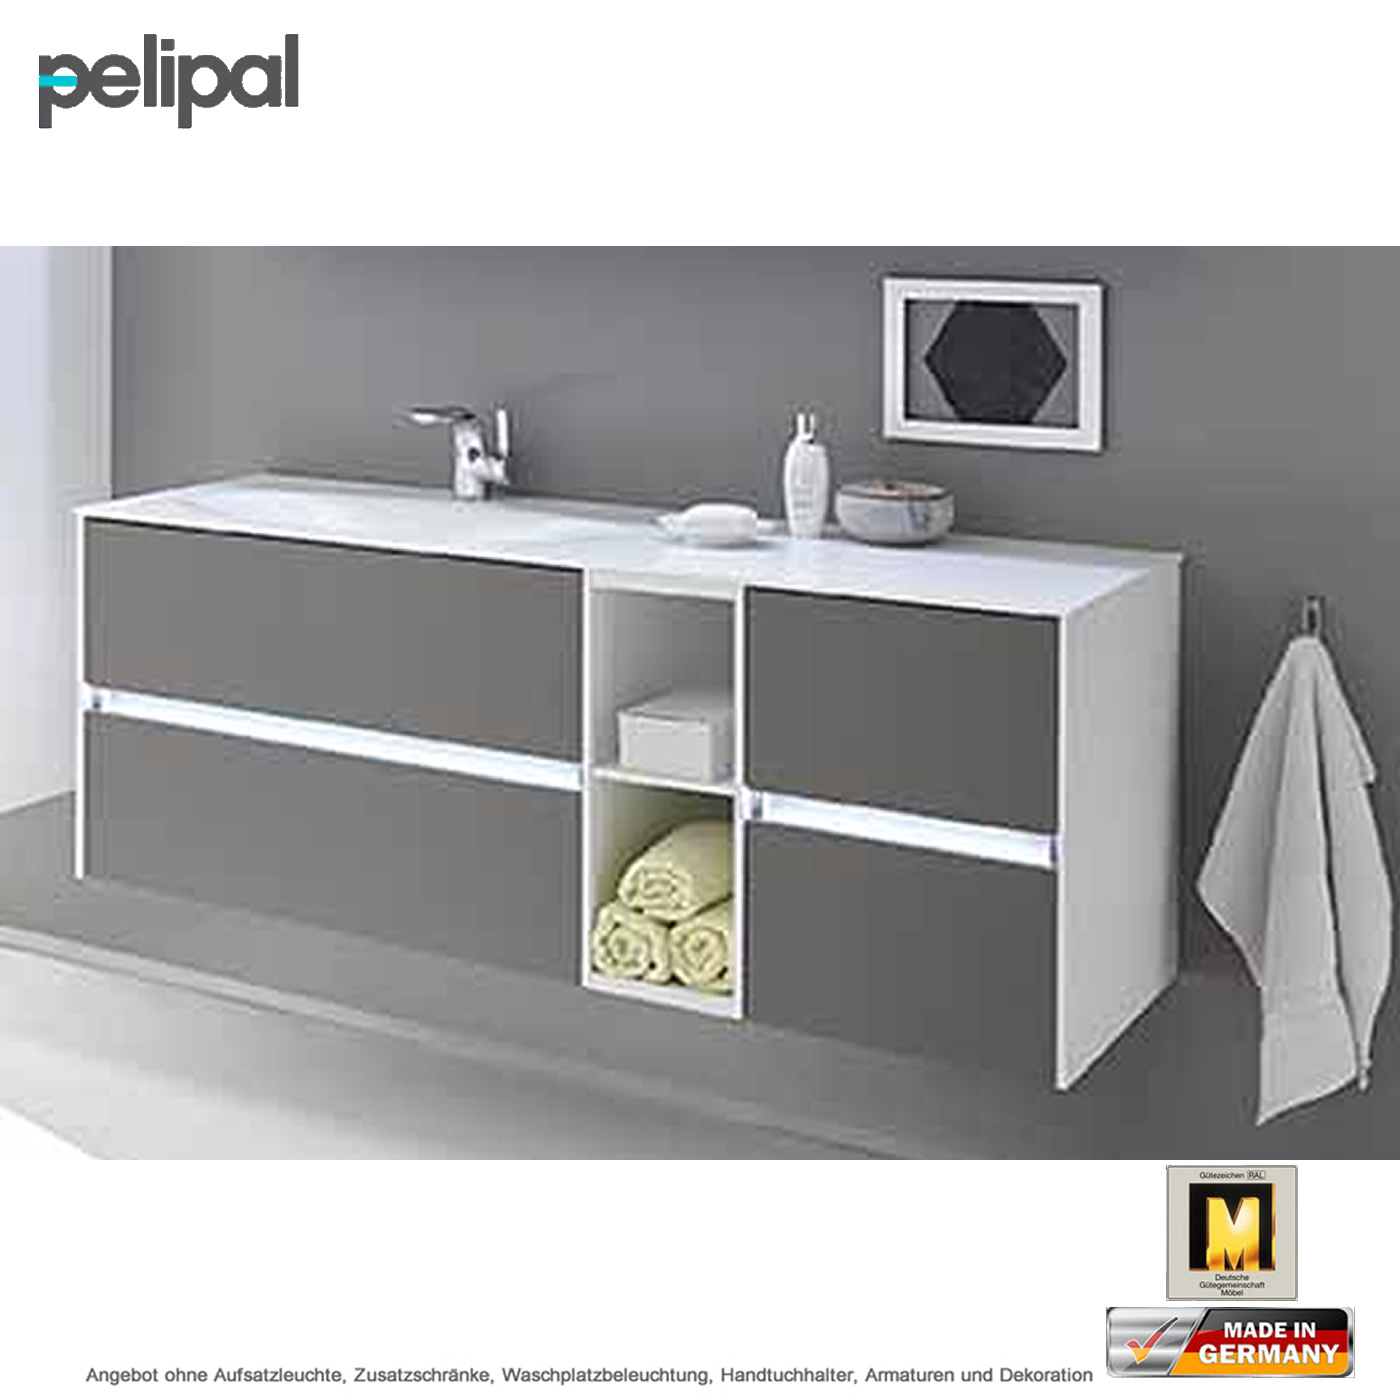 pelipal solitaire 6010 waschtischset 133 cm mit waschtisch und unterschrank 4 ausz ge impulsbad. Black Bedroom Furniture Sets. Home Design Ideas